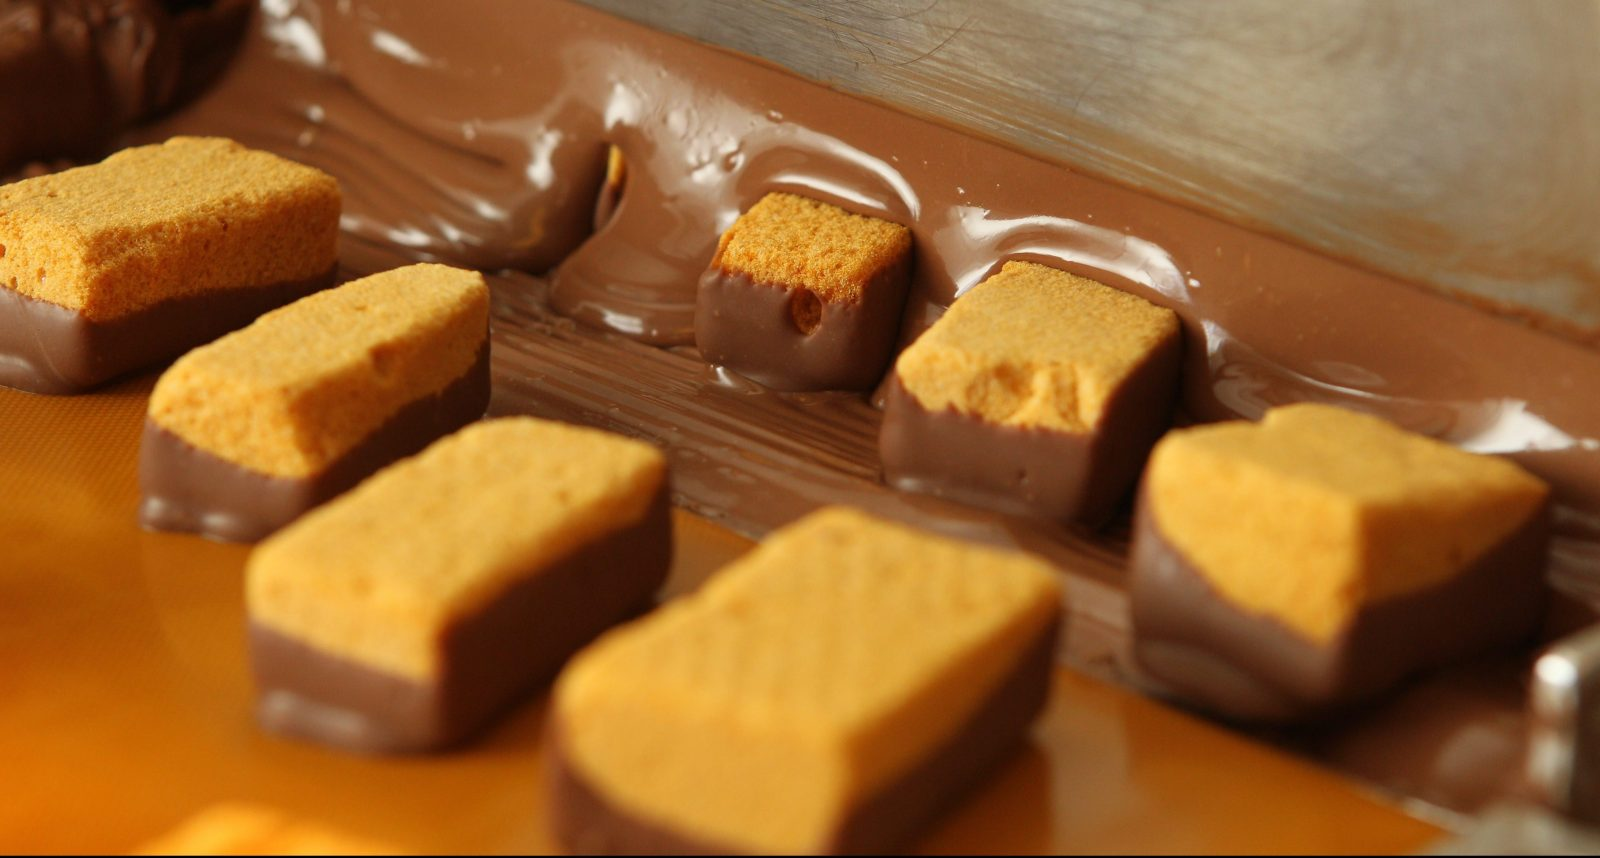 On National Sponge Candy Day, celebrate this Buffalo specialty